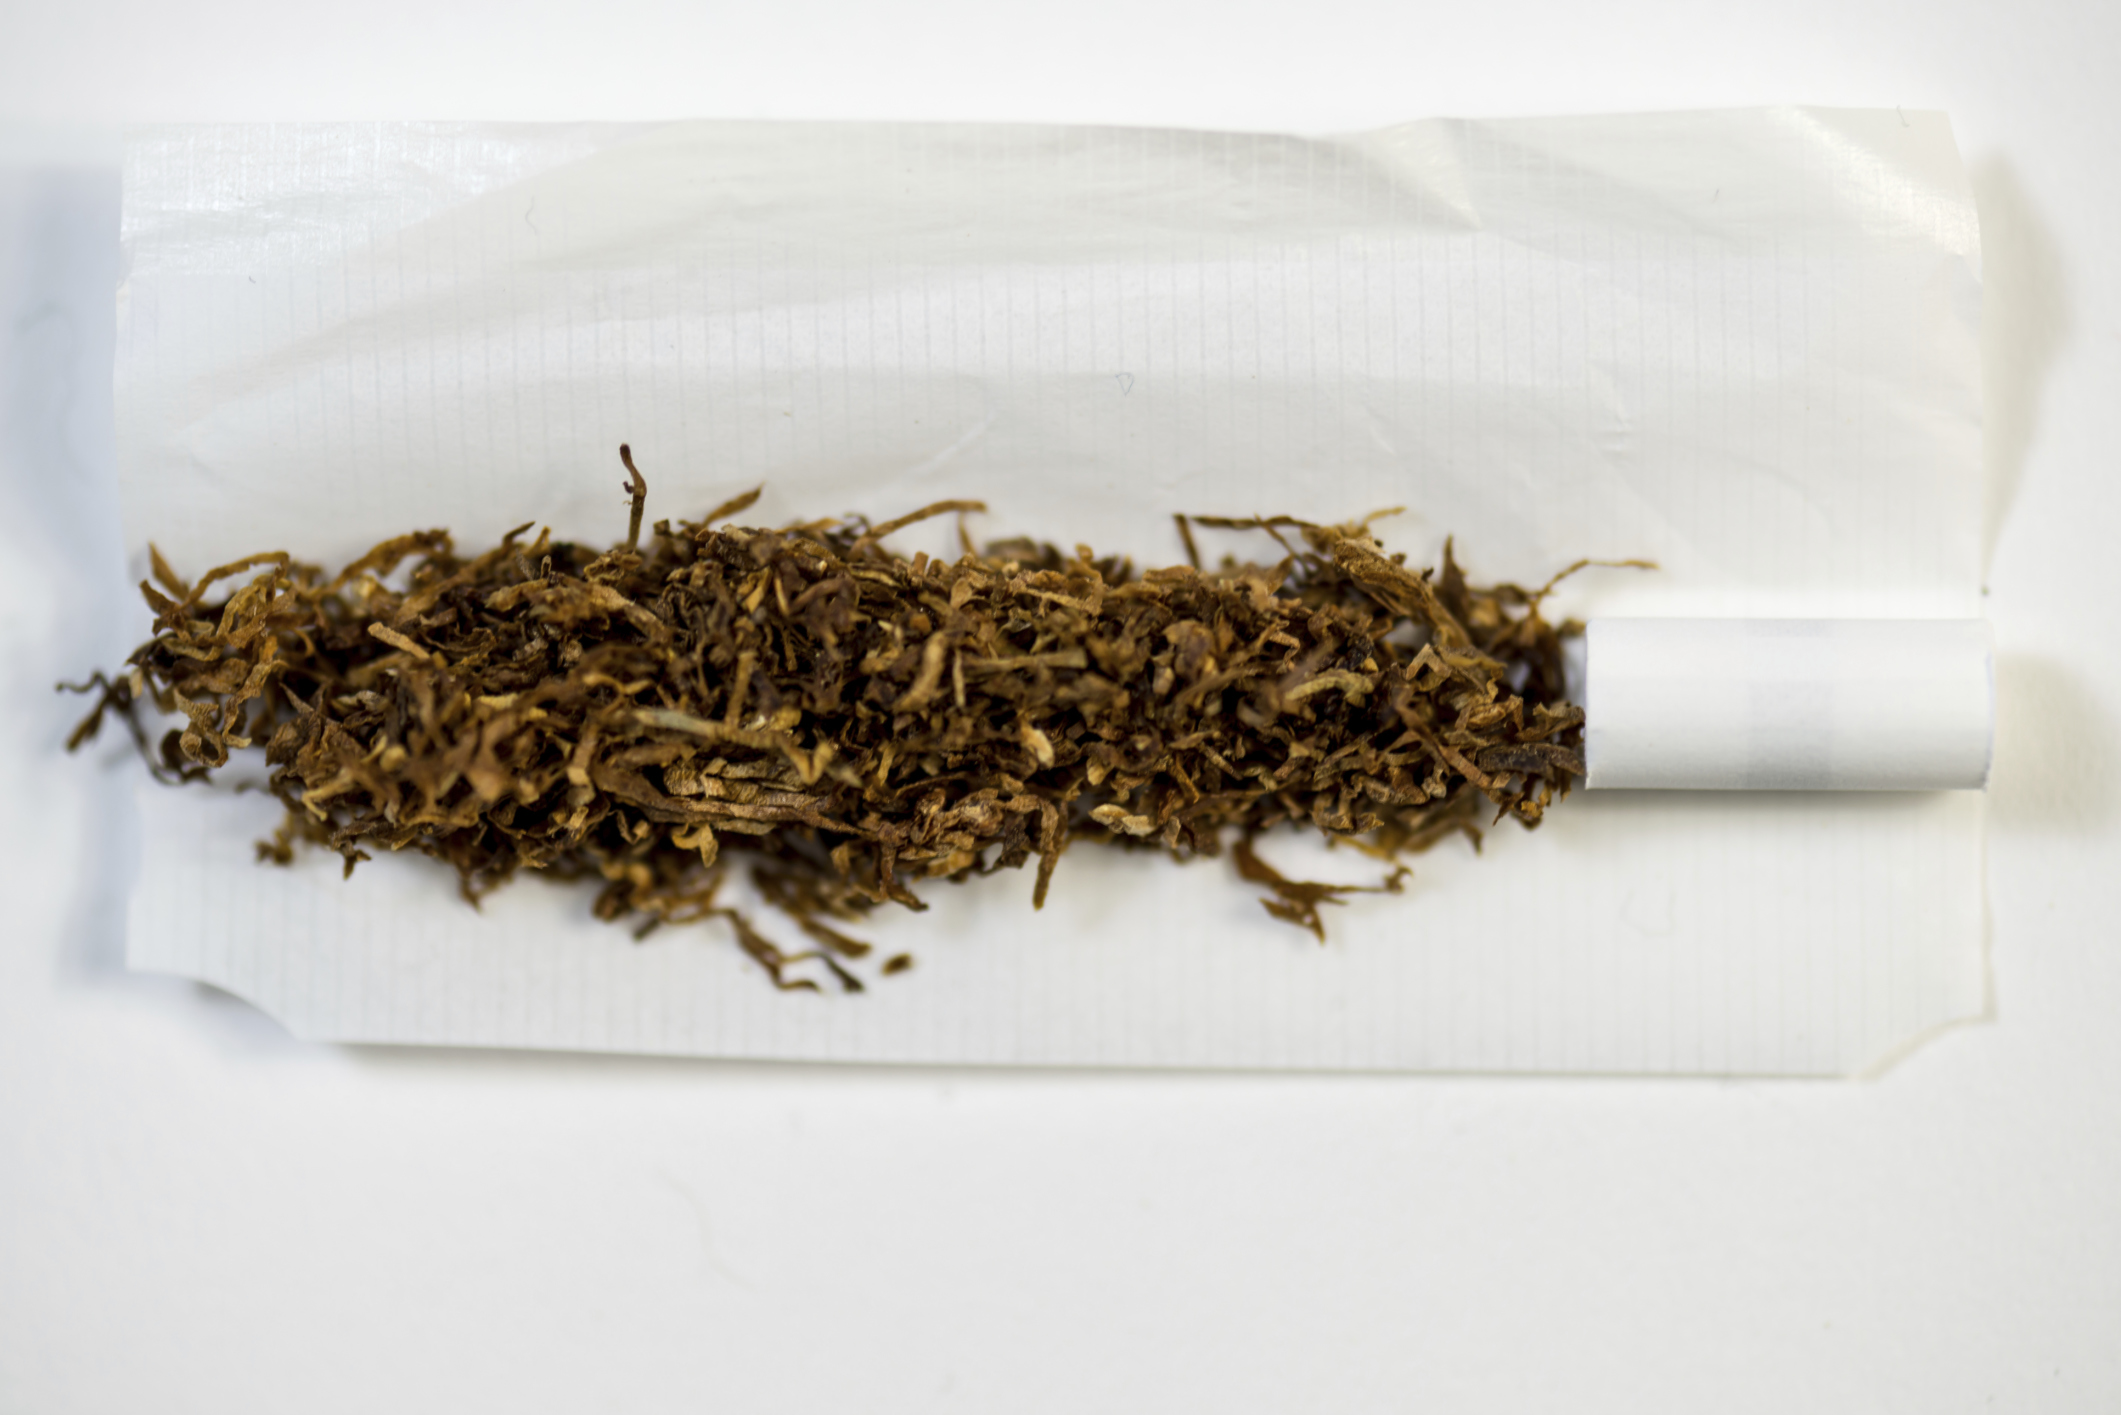 Ban roll-your-own tobacco - expert - NZ Herald